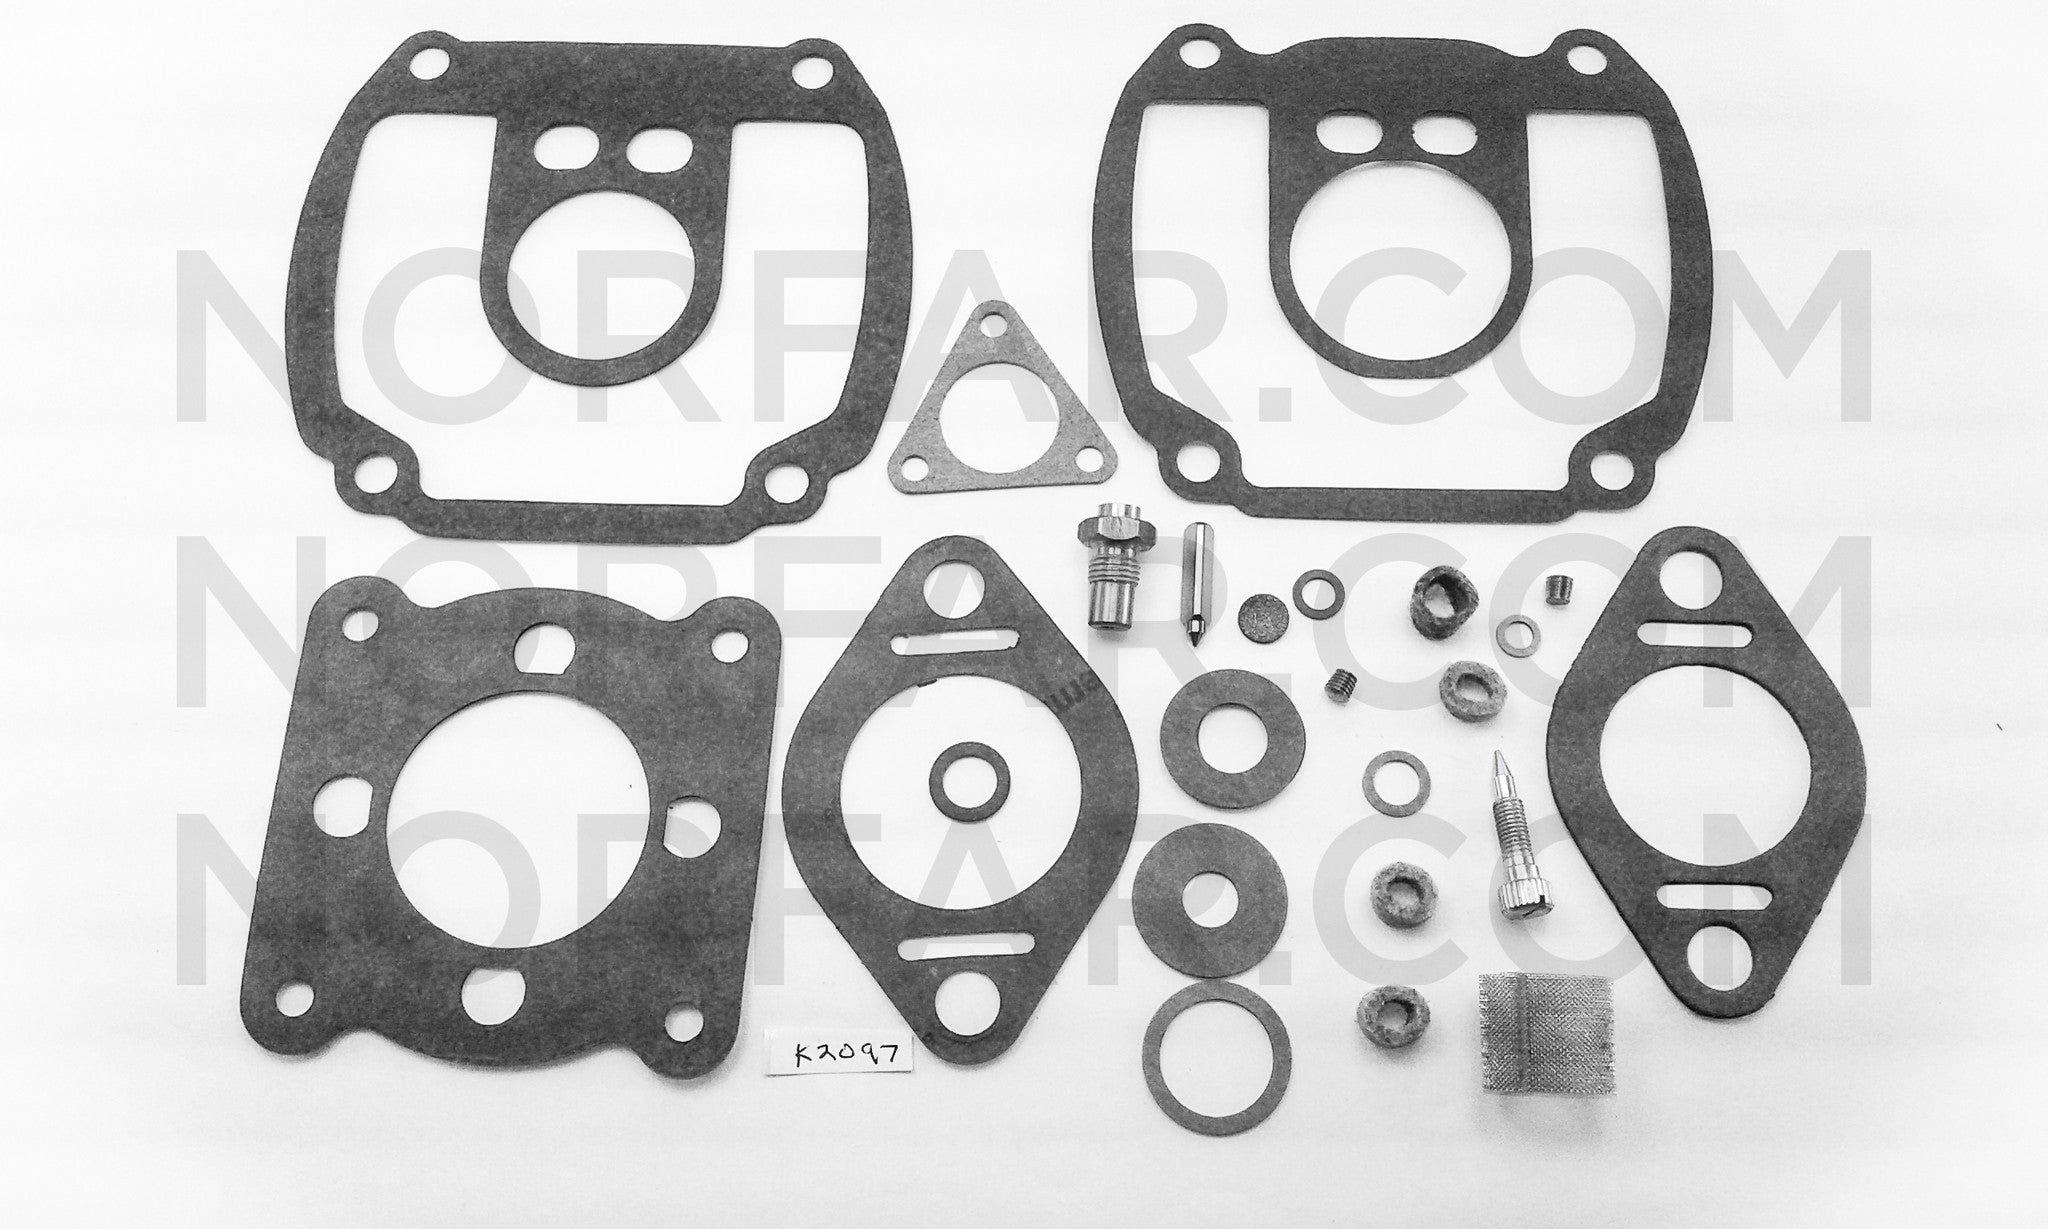 Zenith carburetor kits norfar zenith k2097 carburetor kit ccuart Image collections